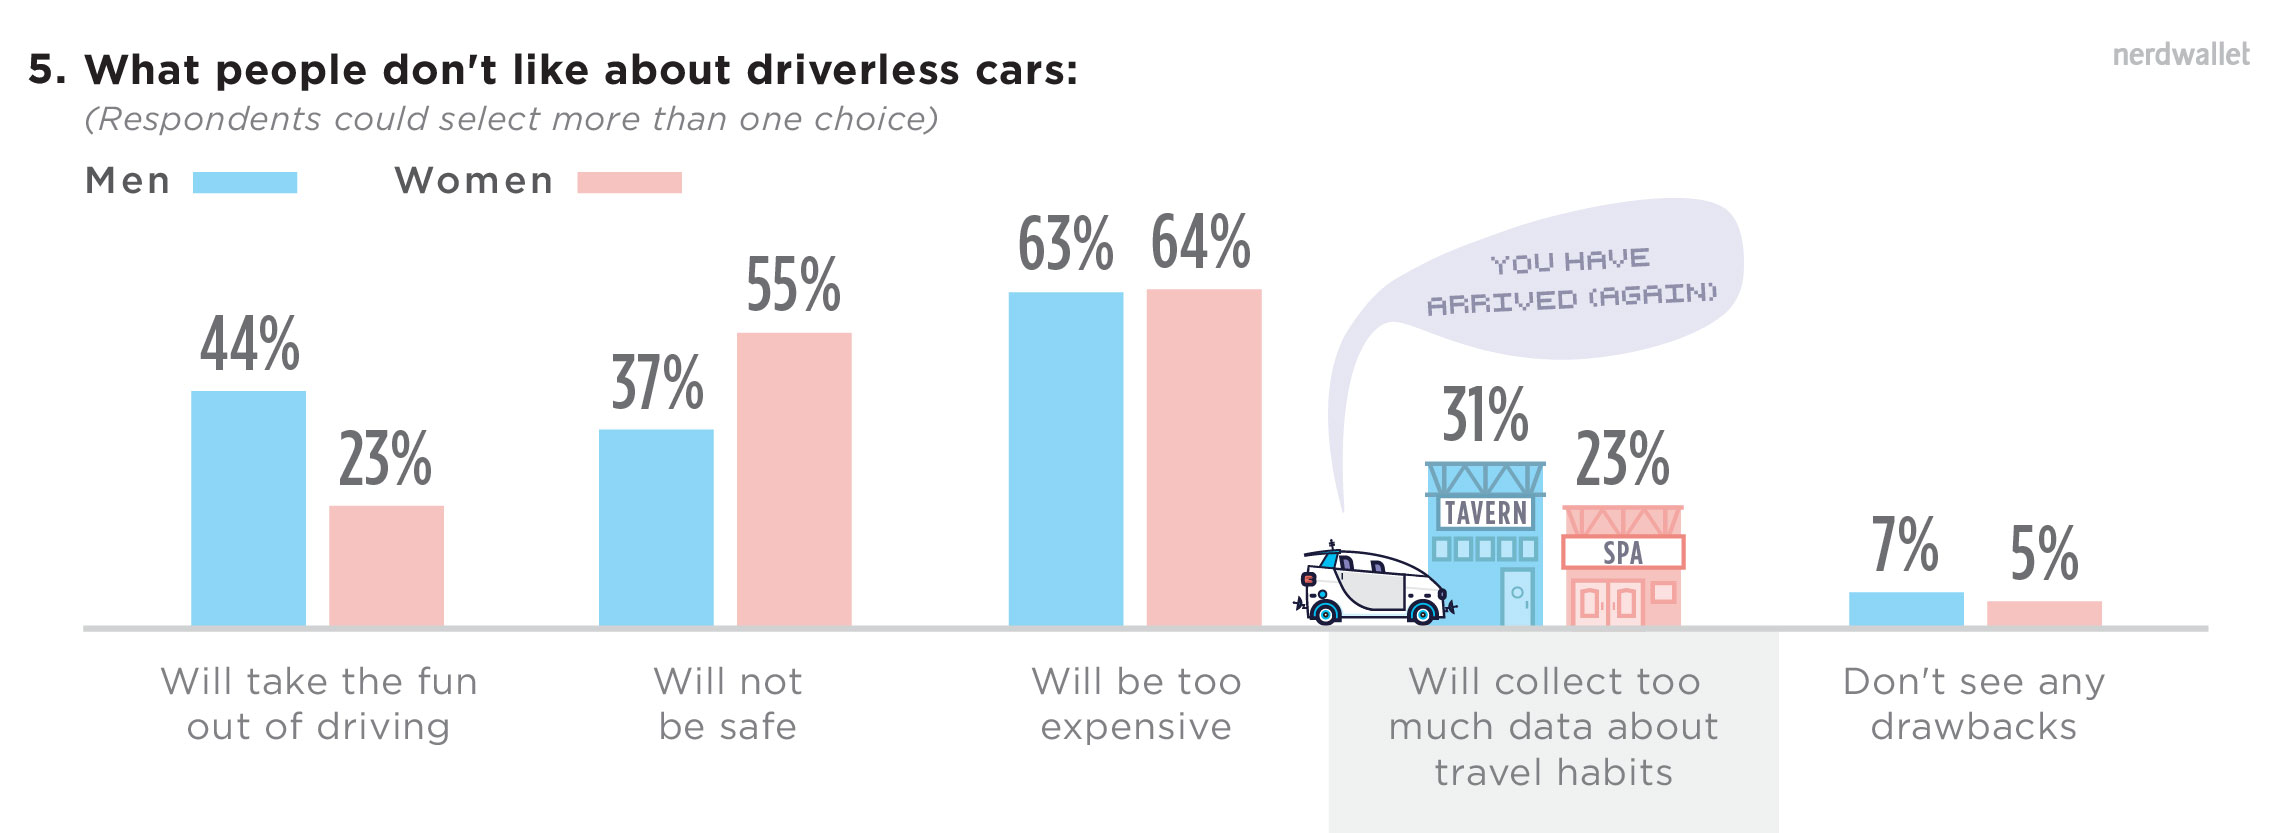 What People Don't Like About Driverless Cars